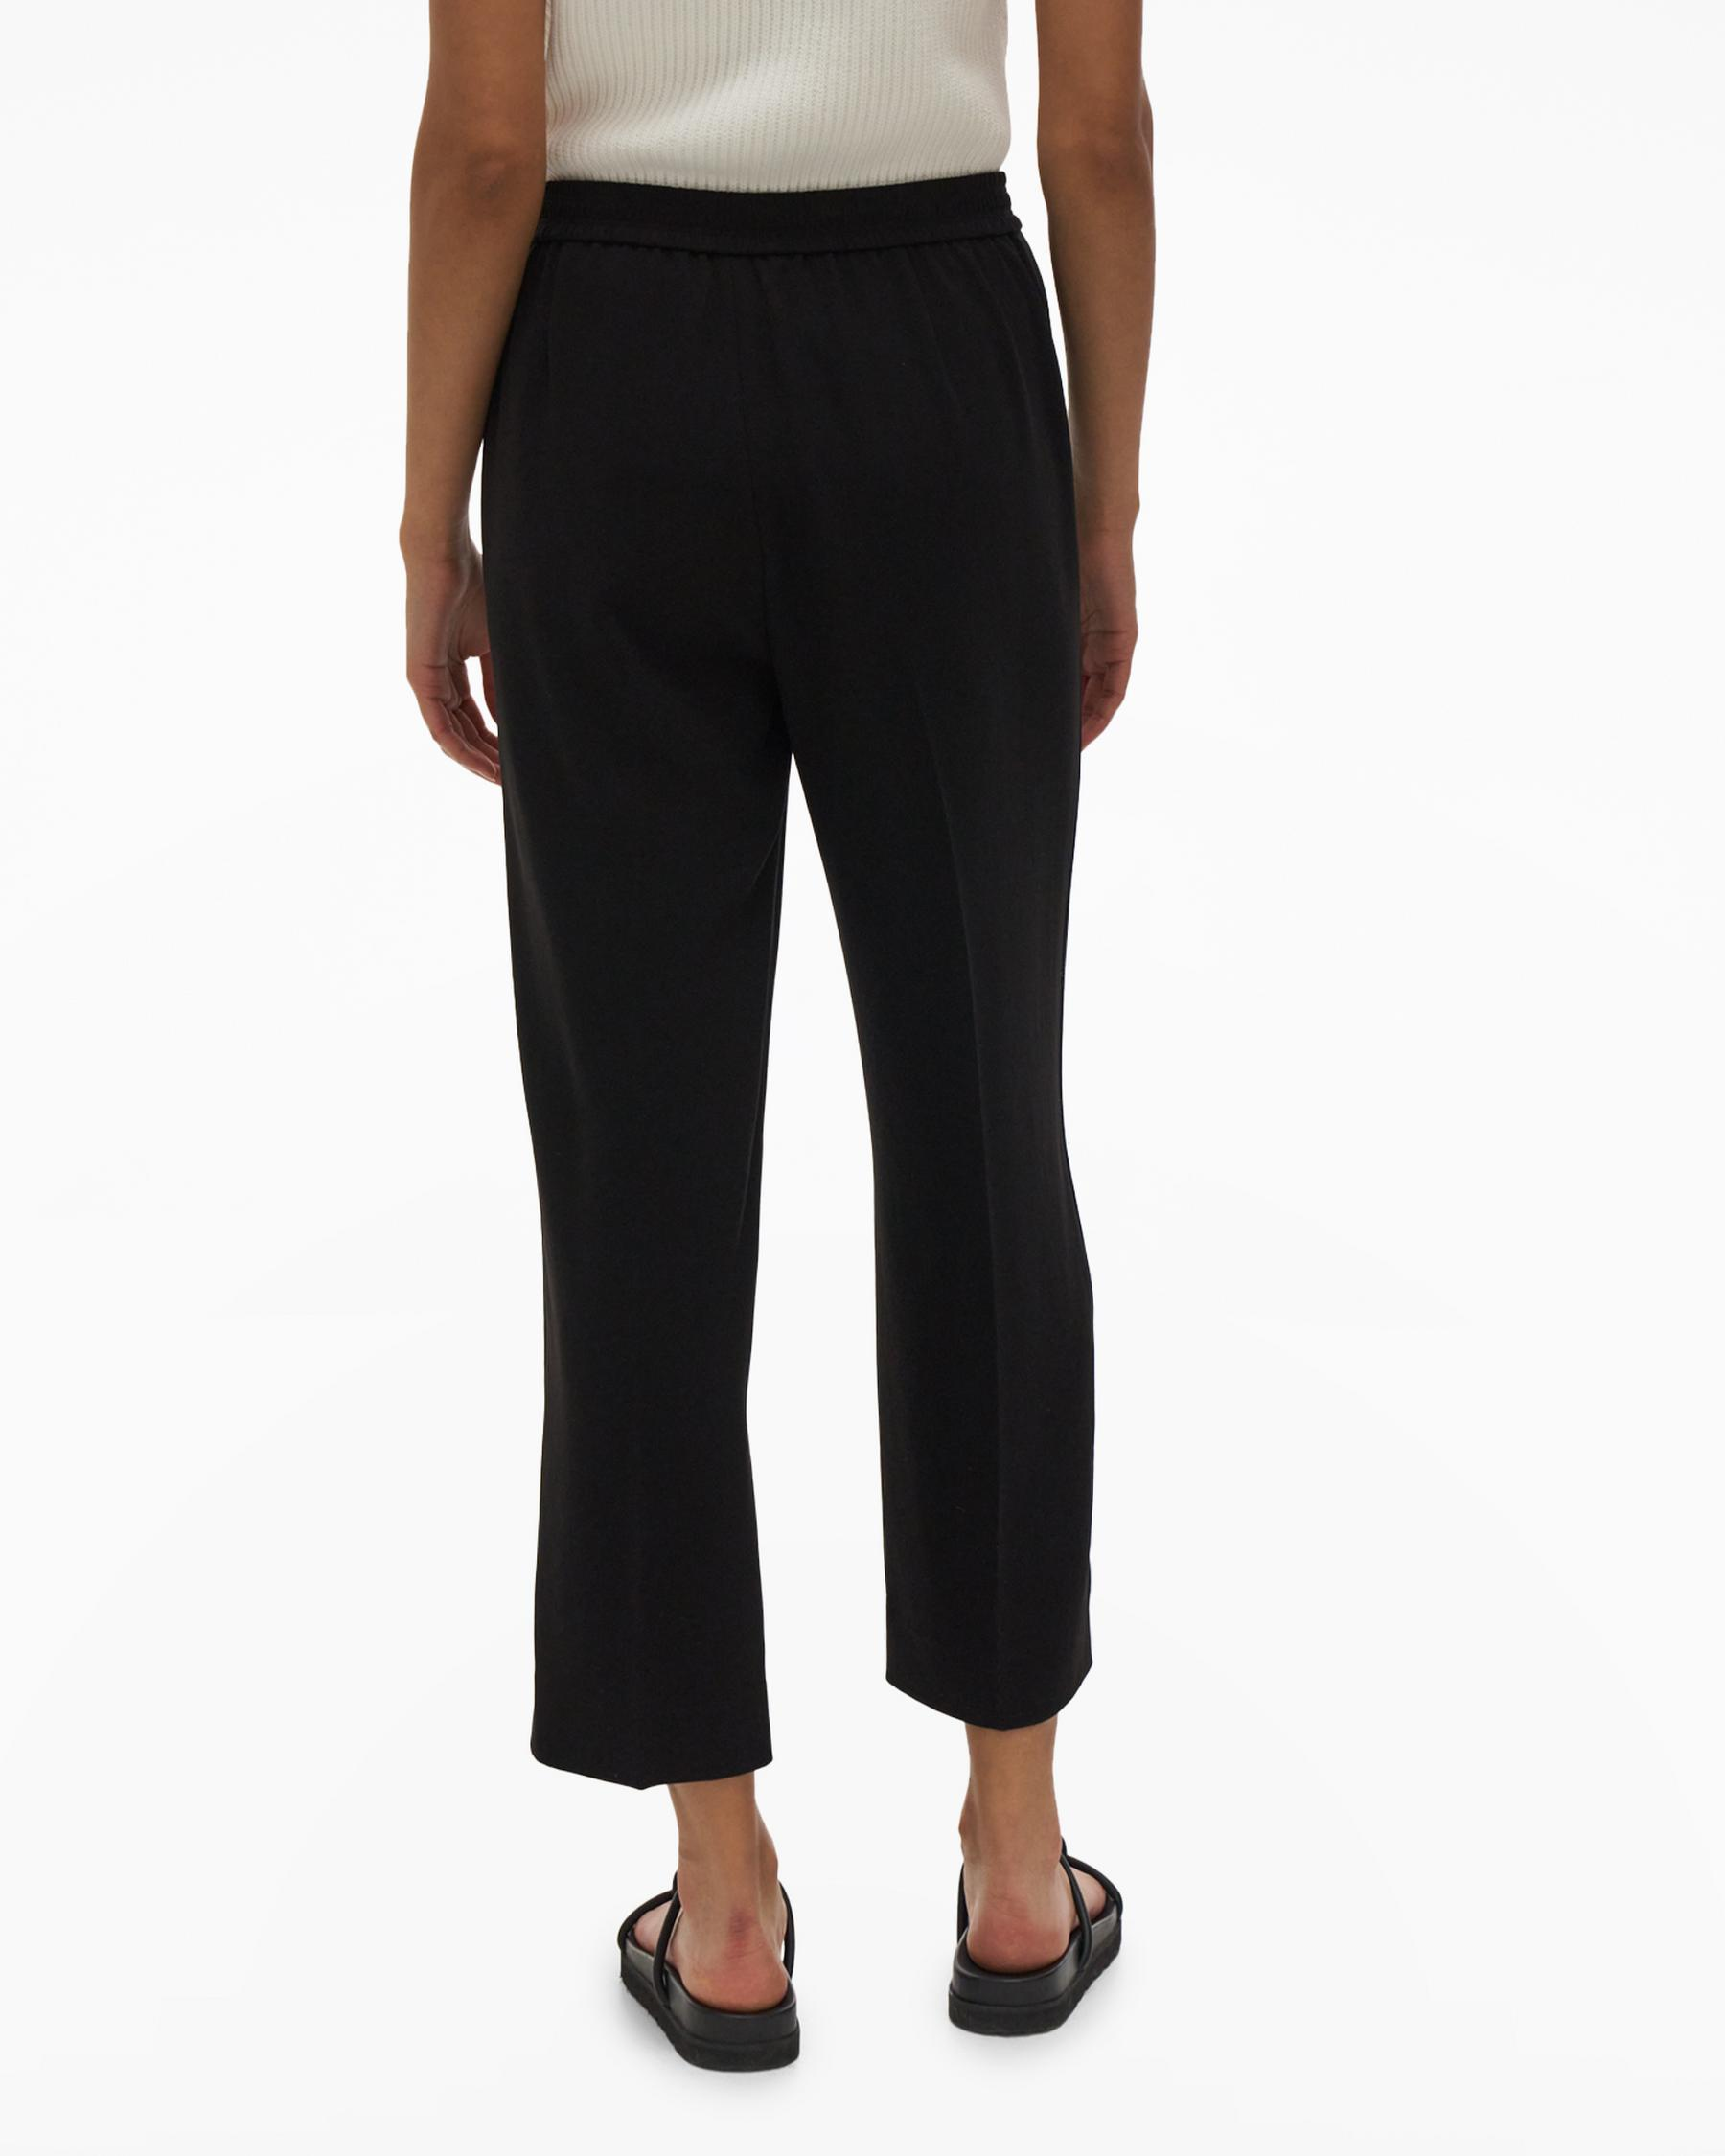 STRETCH PULL-ON PANT 2